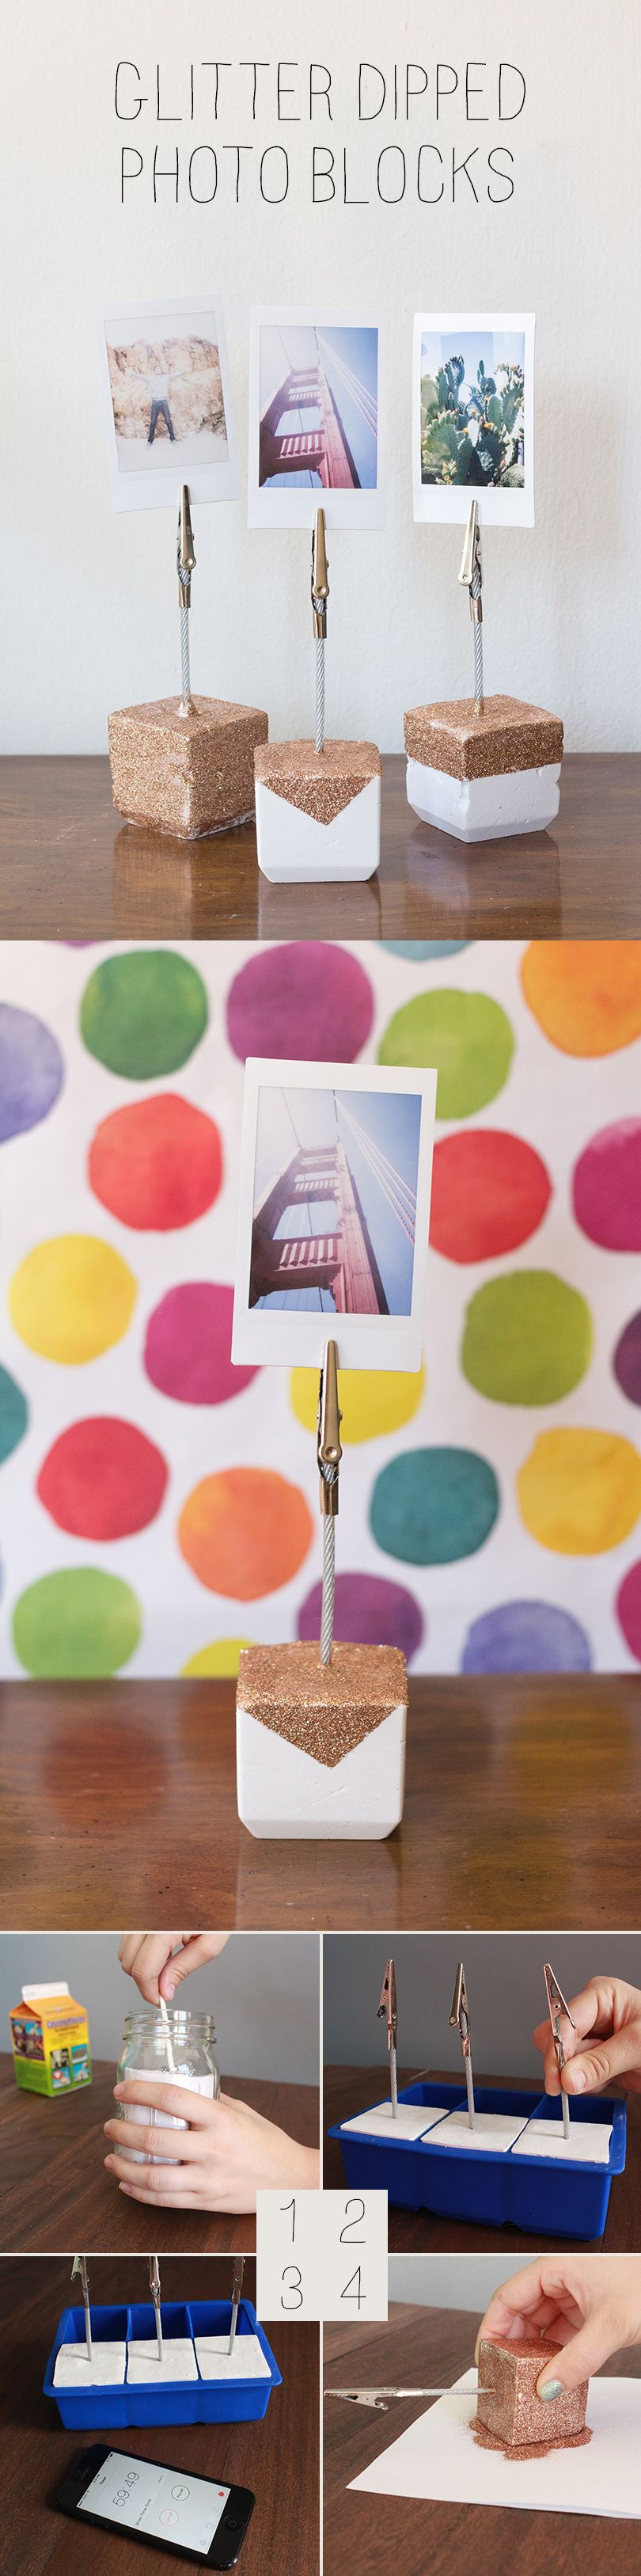 Glitter Dipped Photo Holders for Darby Smart. Designed by ...